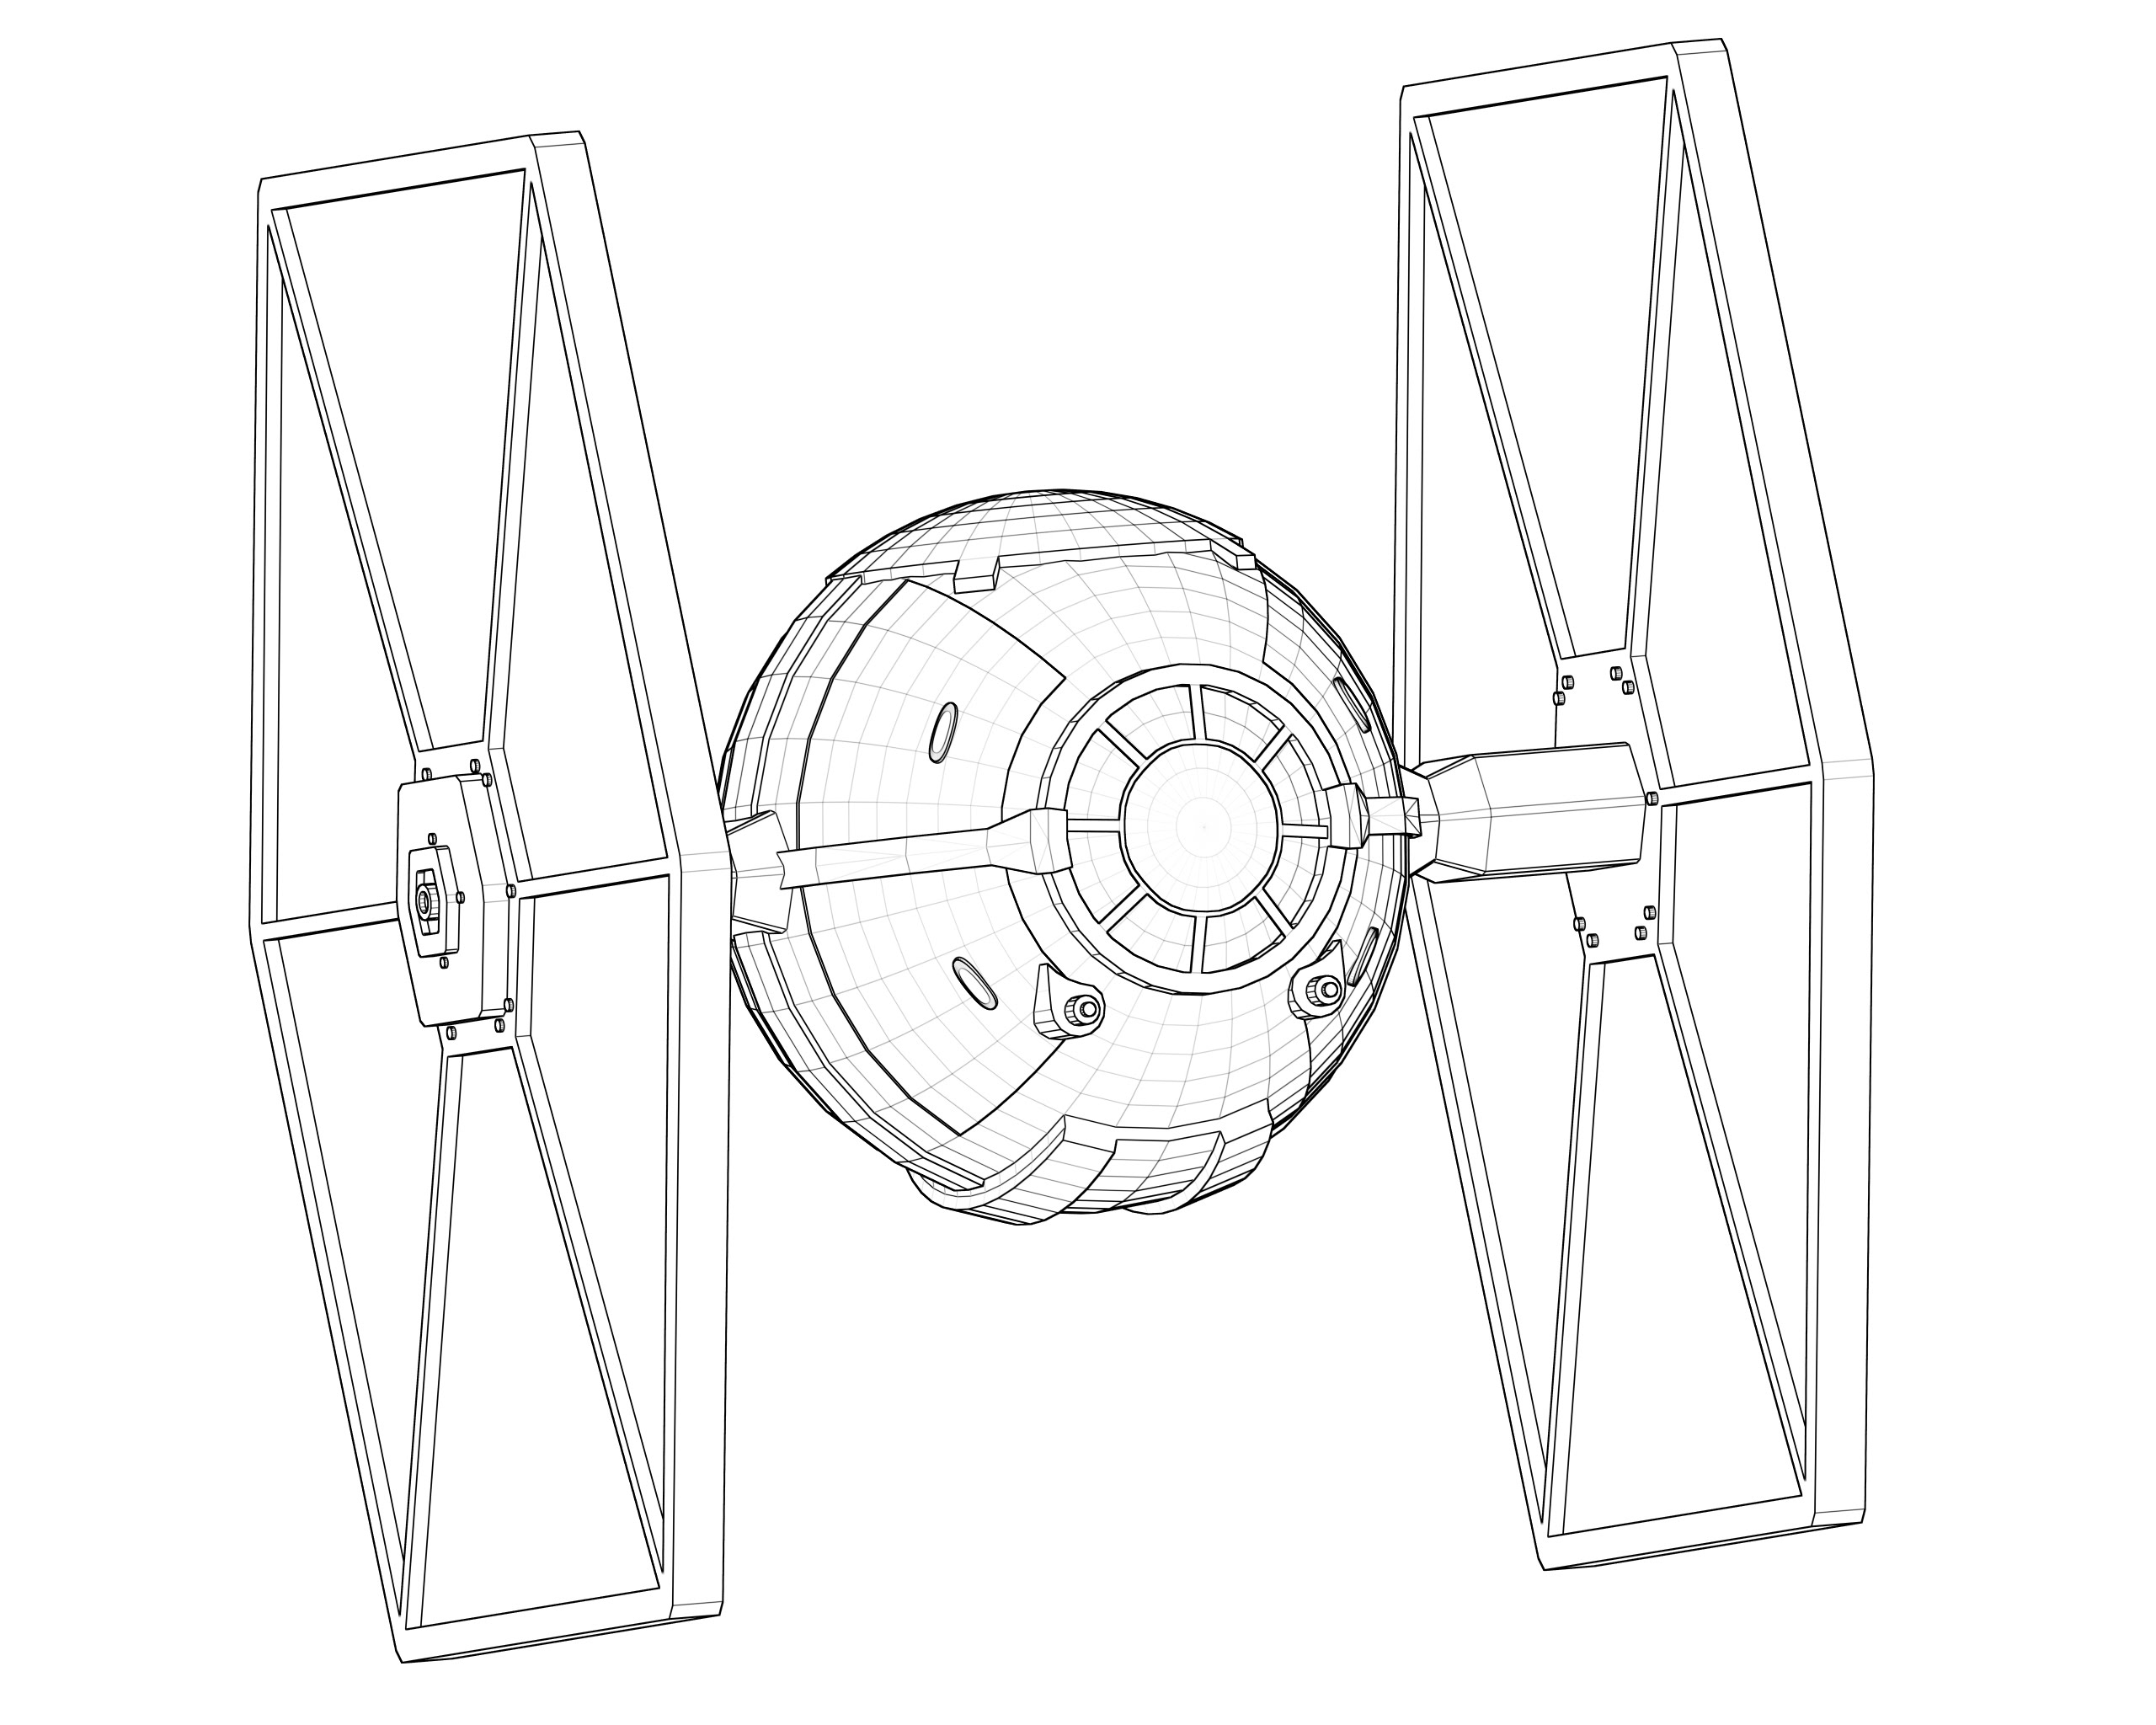 2560x2048 Tie Fighter Drawing Tie Fighter Classroom Decorations